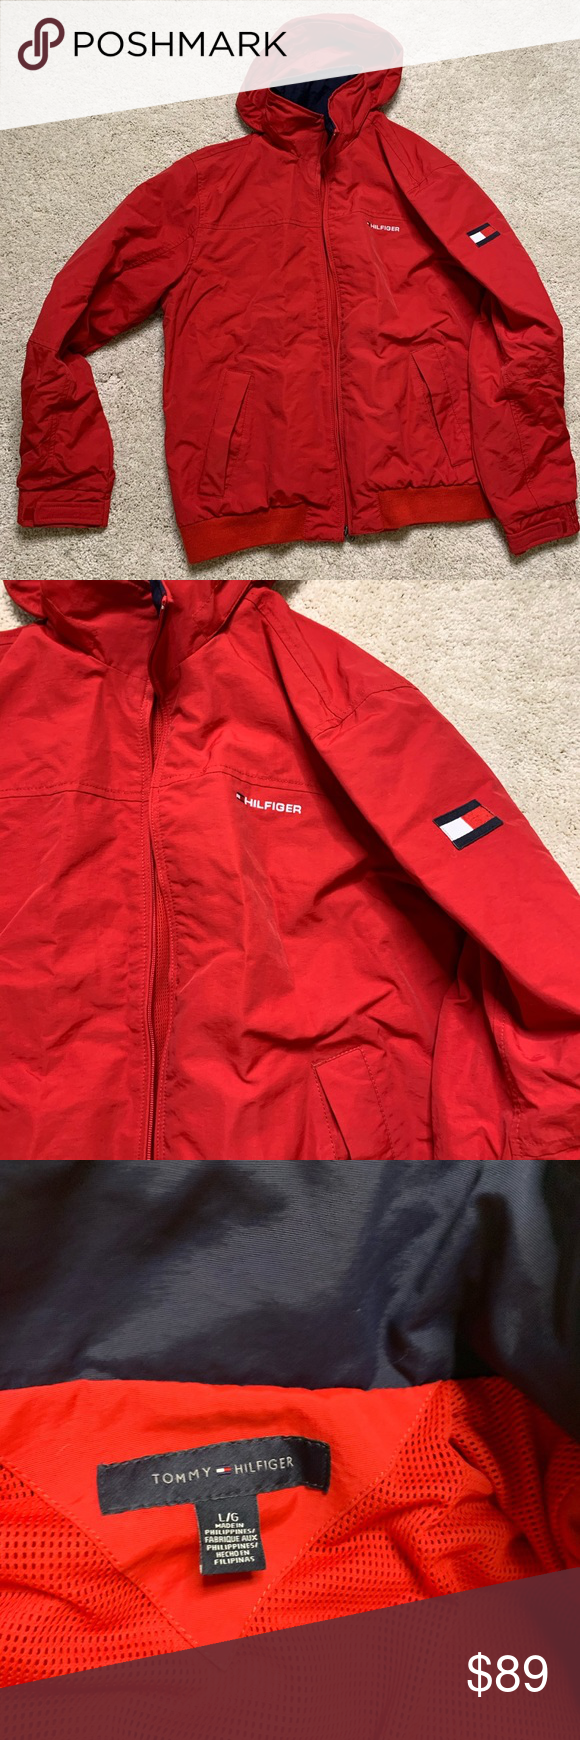 Men S Tommy Hilfiger Red Retro Yachting Jacket L Tommy Hilfiger Tommy Hilfiger Jackets Hilfiger [ 1740 x 580 Pixel ]